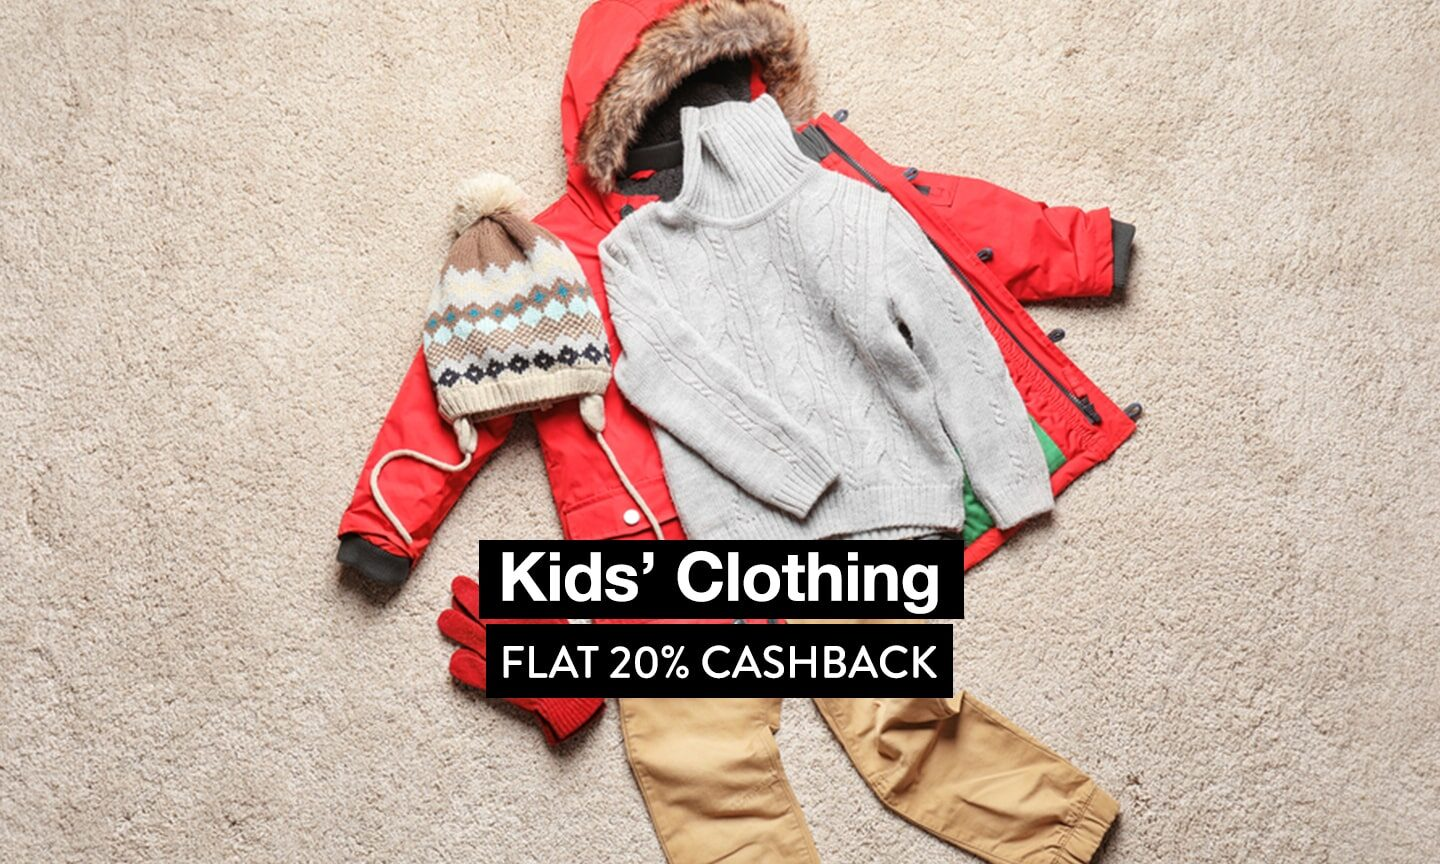 Kids Clothing - Flat 20% CB